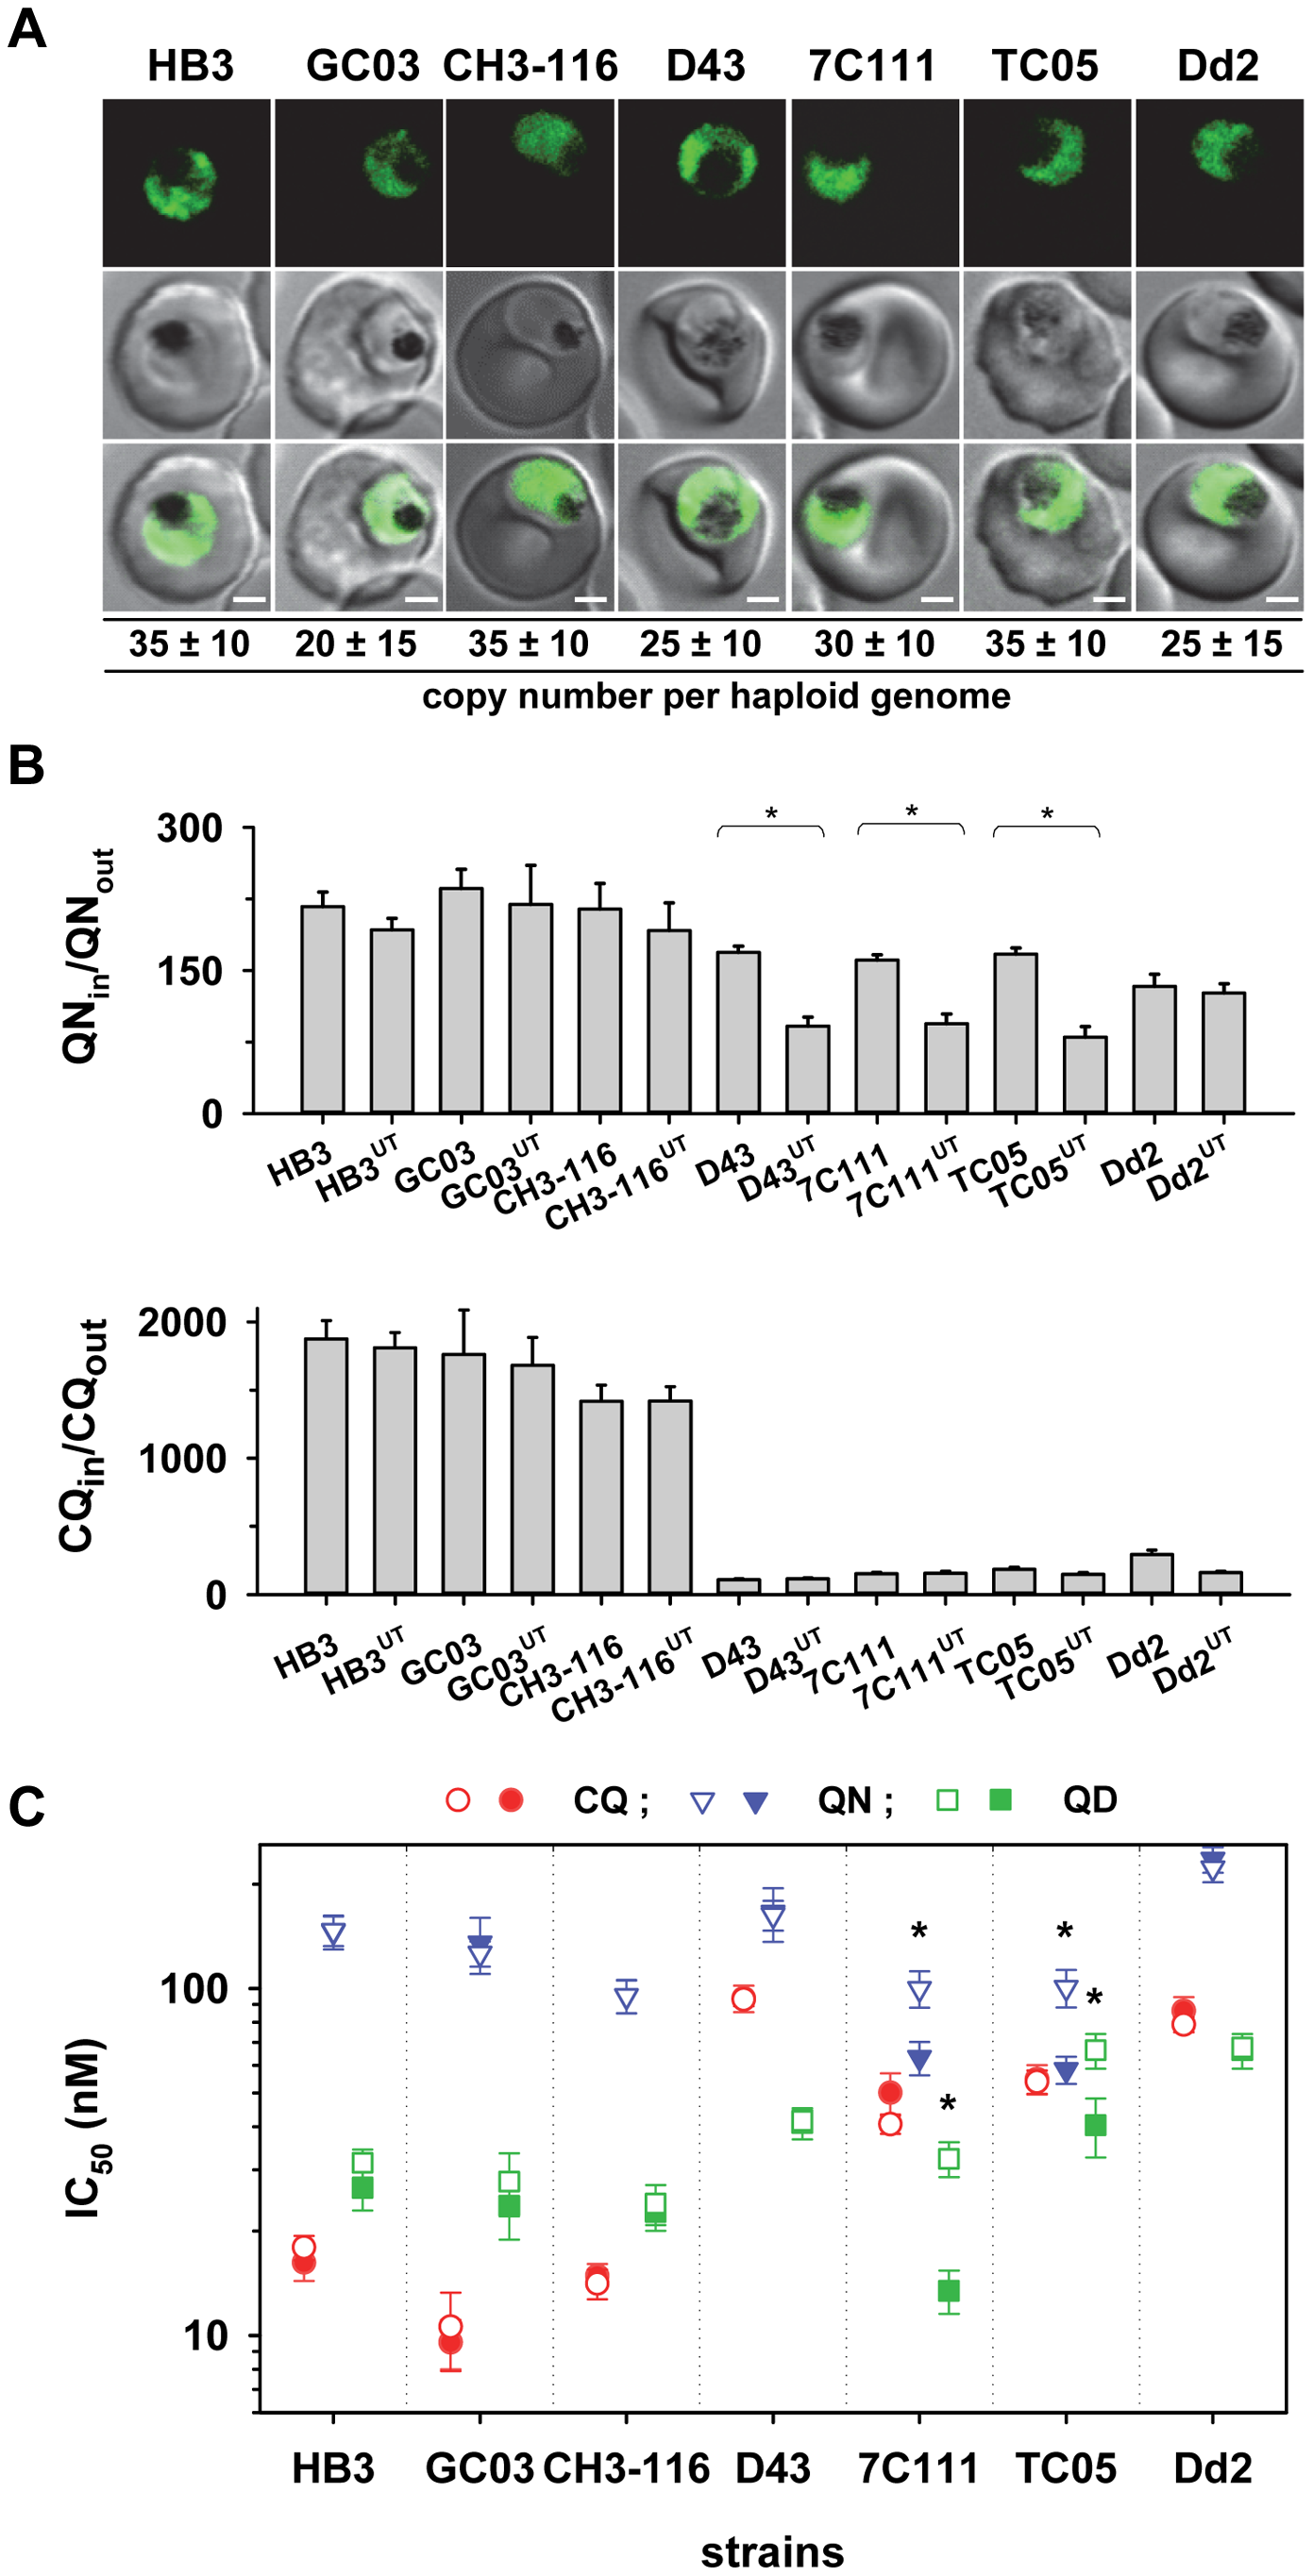 Overexpression of the HECT domain of PfUT confers quinine and quinidine response variations in appropriate genetic backgrounds.